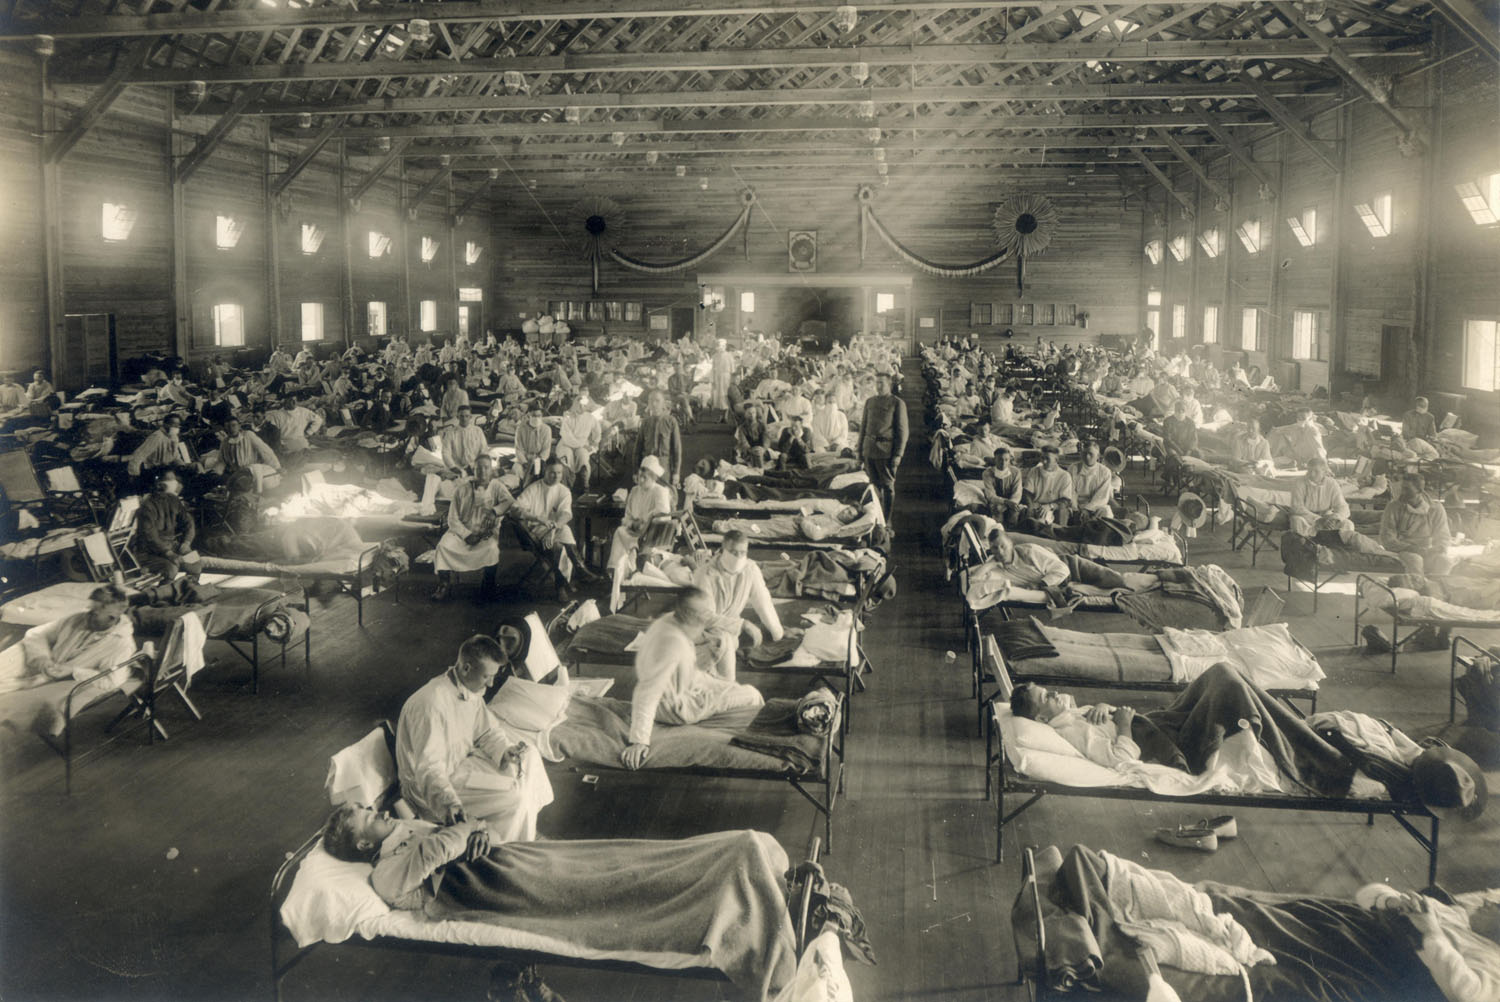 The Second Wave of Coronavirus Won't Be Like the Second Wave of Spanish Flu